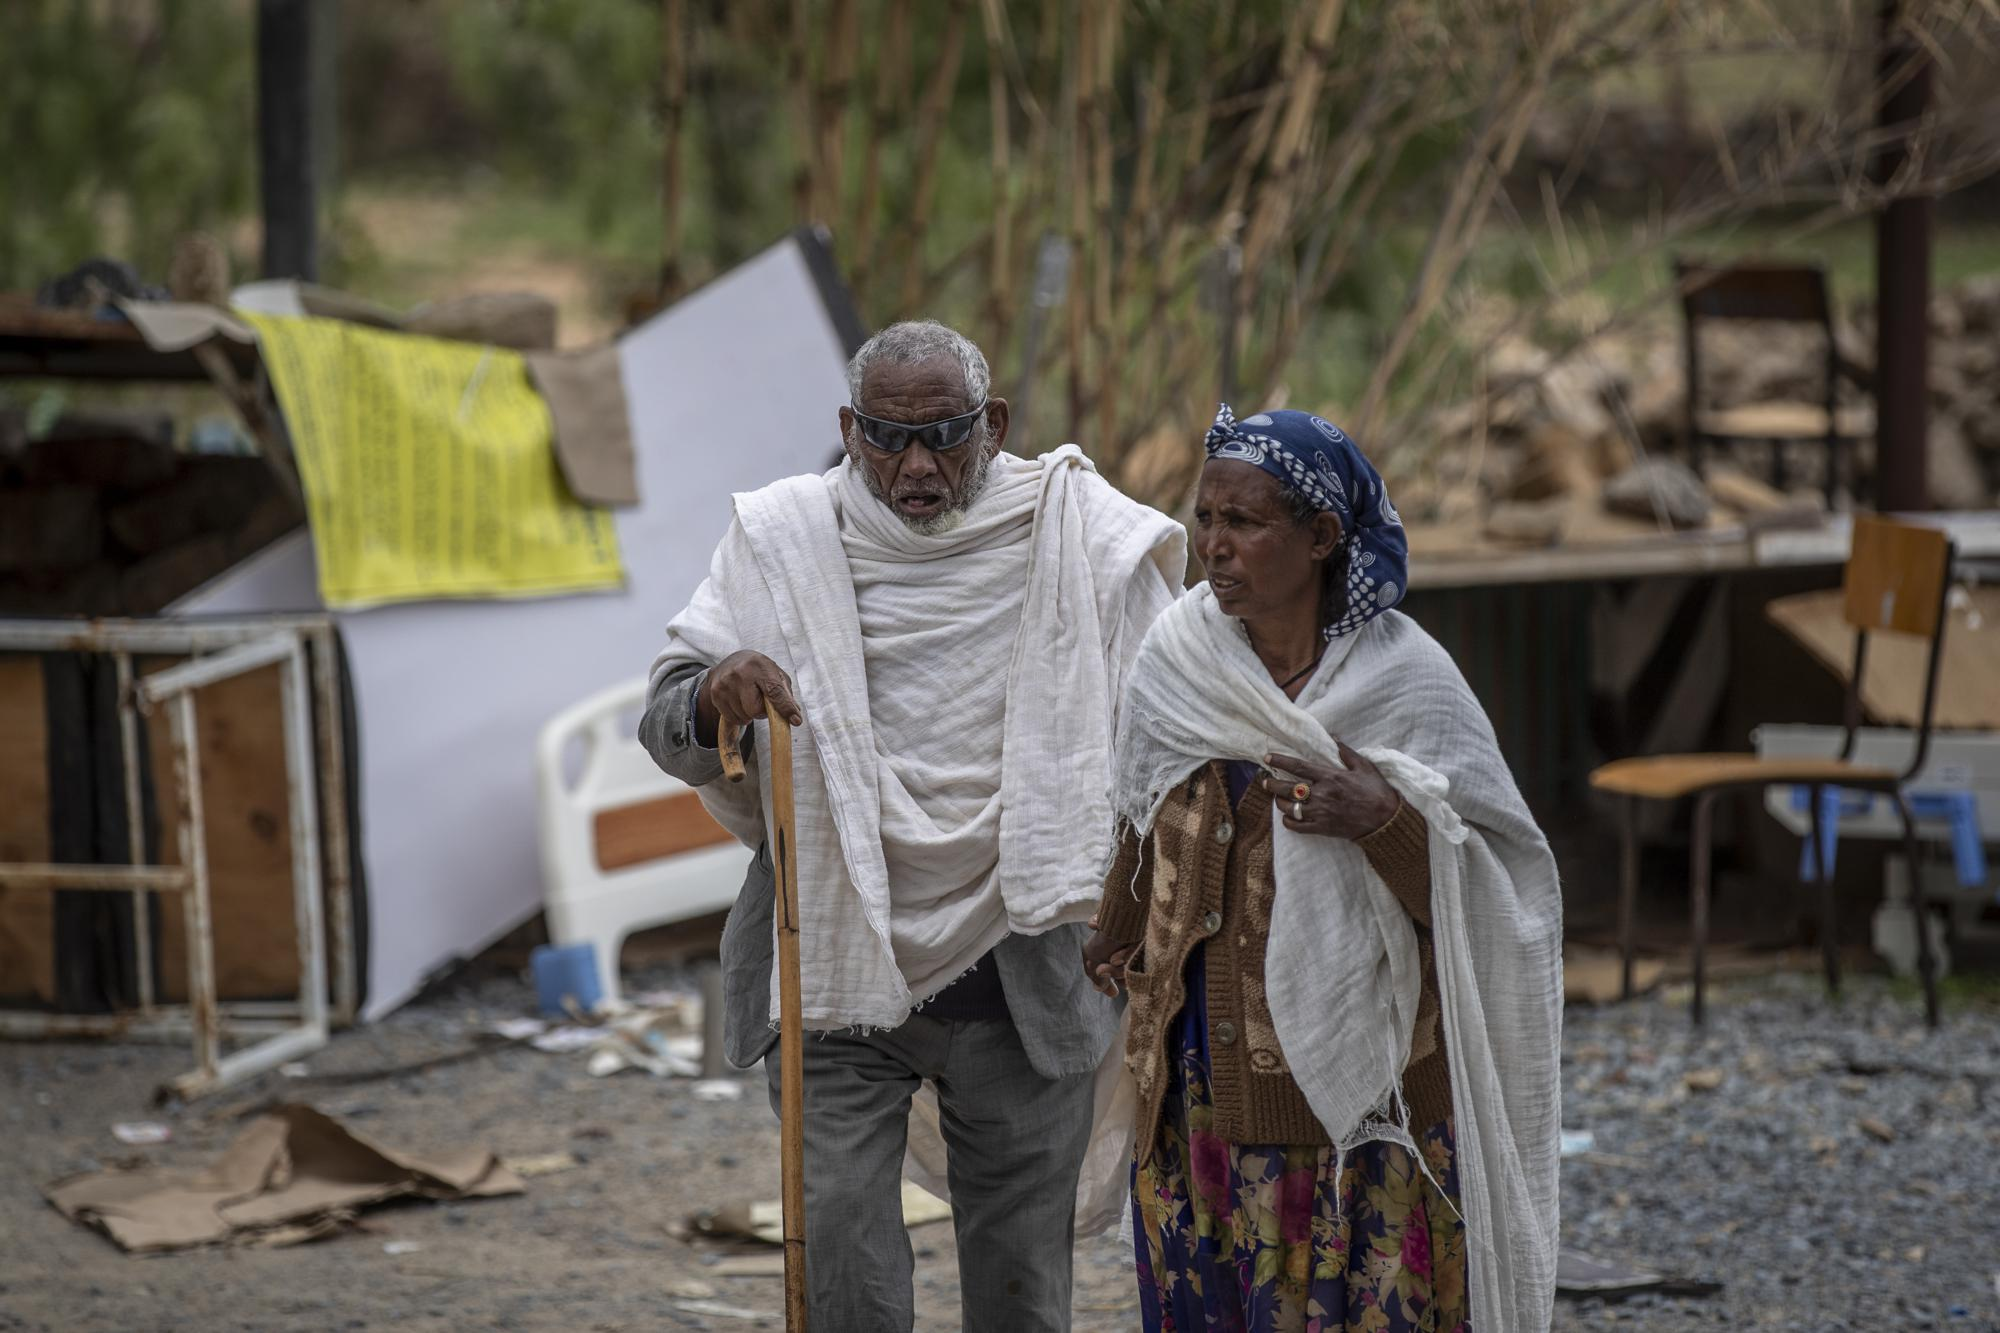 A woman leads a blind man to a visiting doctor, past destroyed furniture and other items in the driveway of a hospital which was damaged and looted by Eritrean soldiers who used it as a base, according to witnesses, in Hawzen, in the Tigray region of northern Ethiopia, on Friday, May 7, 2021. The battle for Hawzen is part of a larger war in Tigray between the Ethiopian government and the Tigrayan rebels that has led to the flightof more than 2 million of the region's 6 million people. (AP Photo/Ben Curtis)